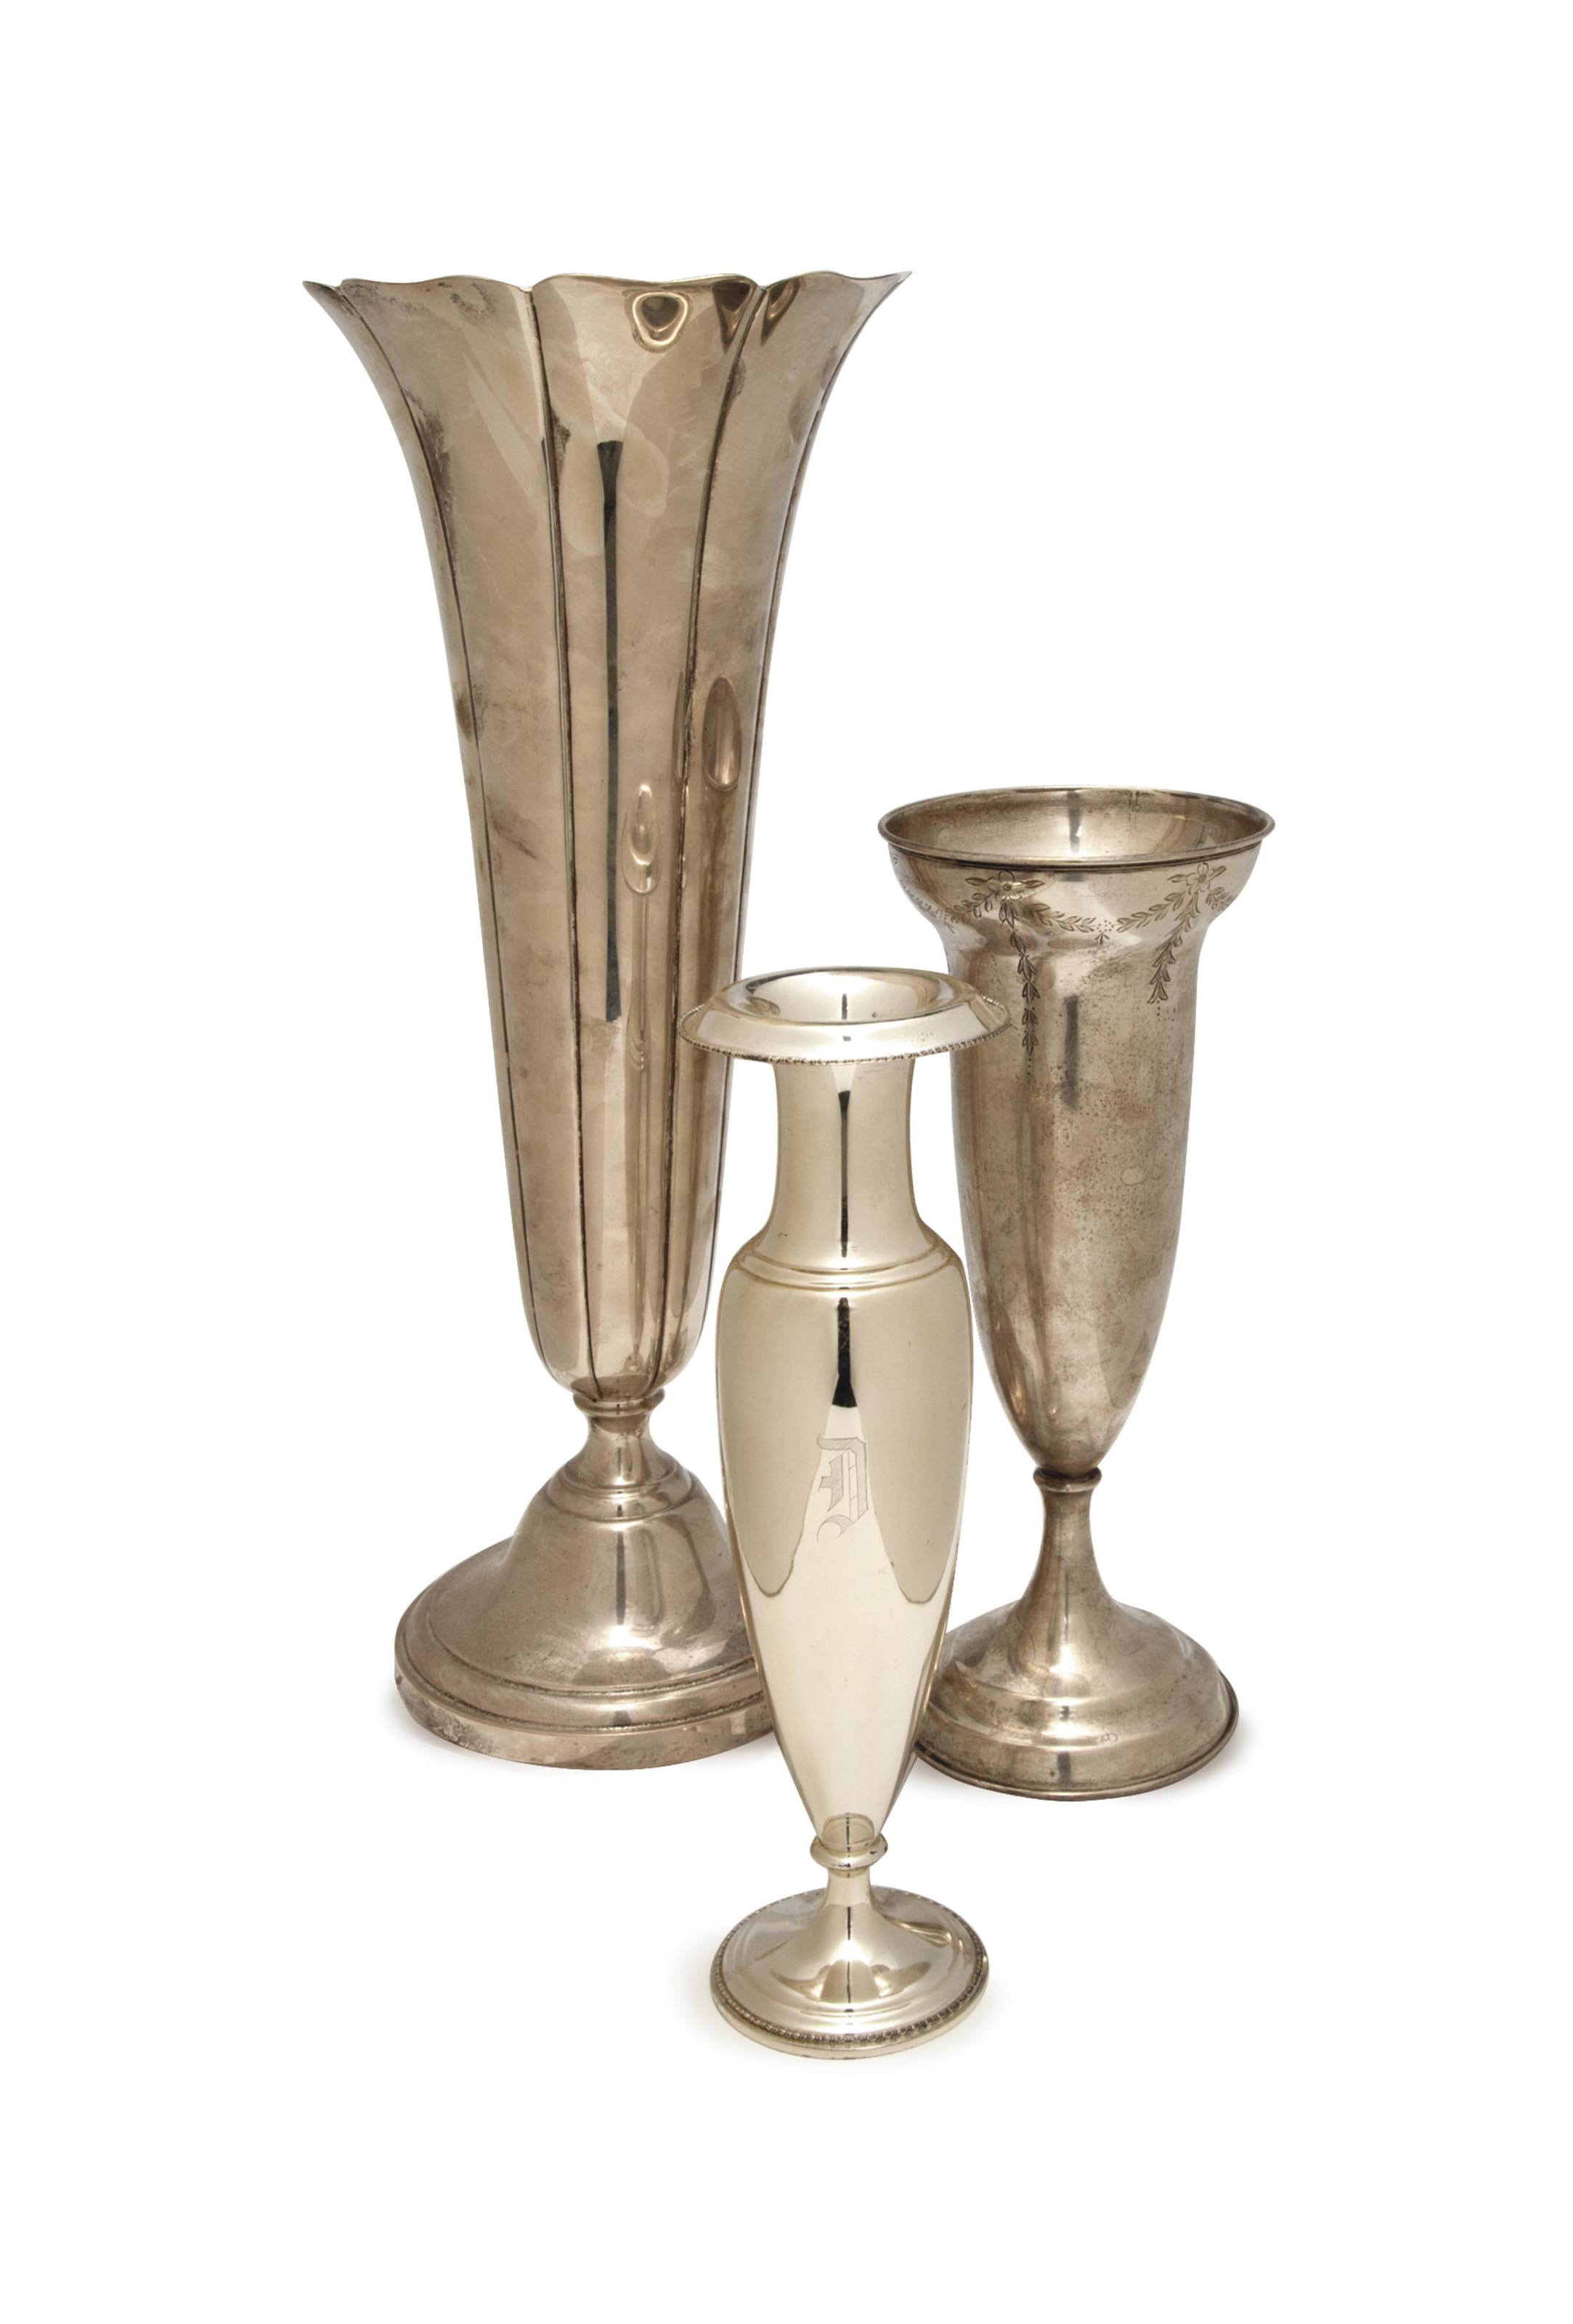 THREE AMERICAN SILVER VASES,